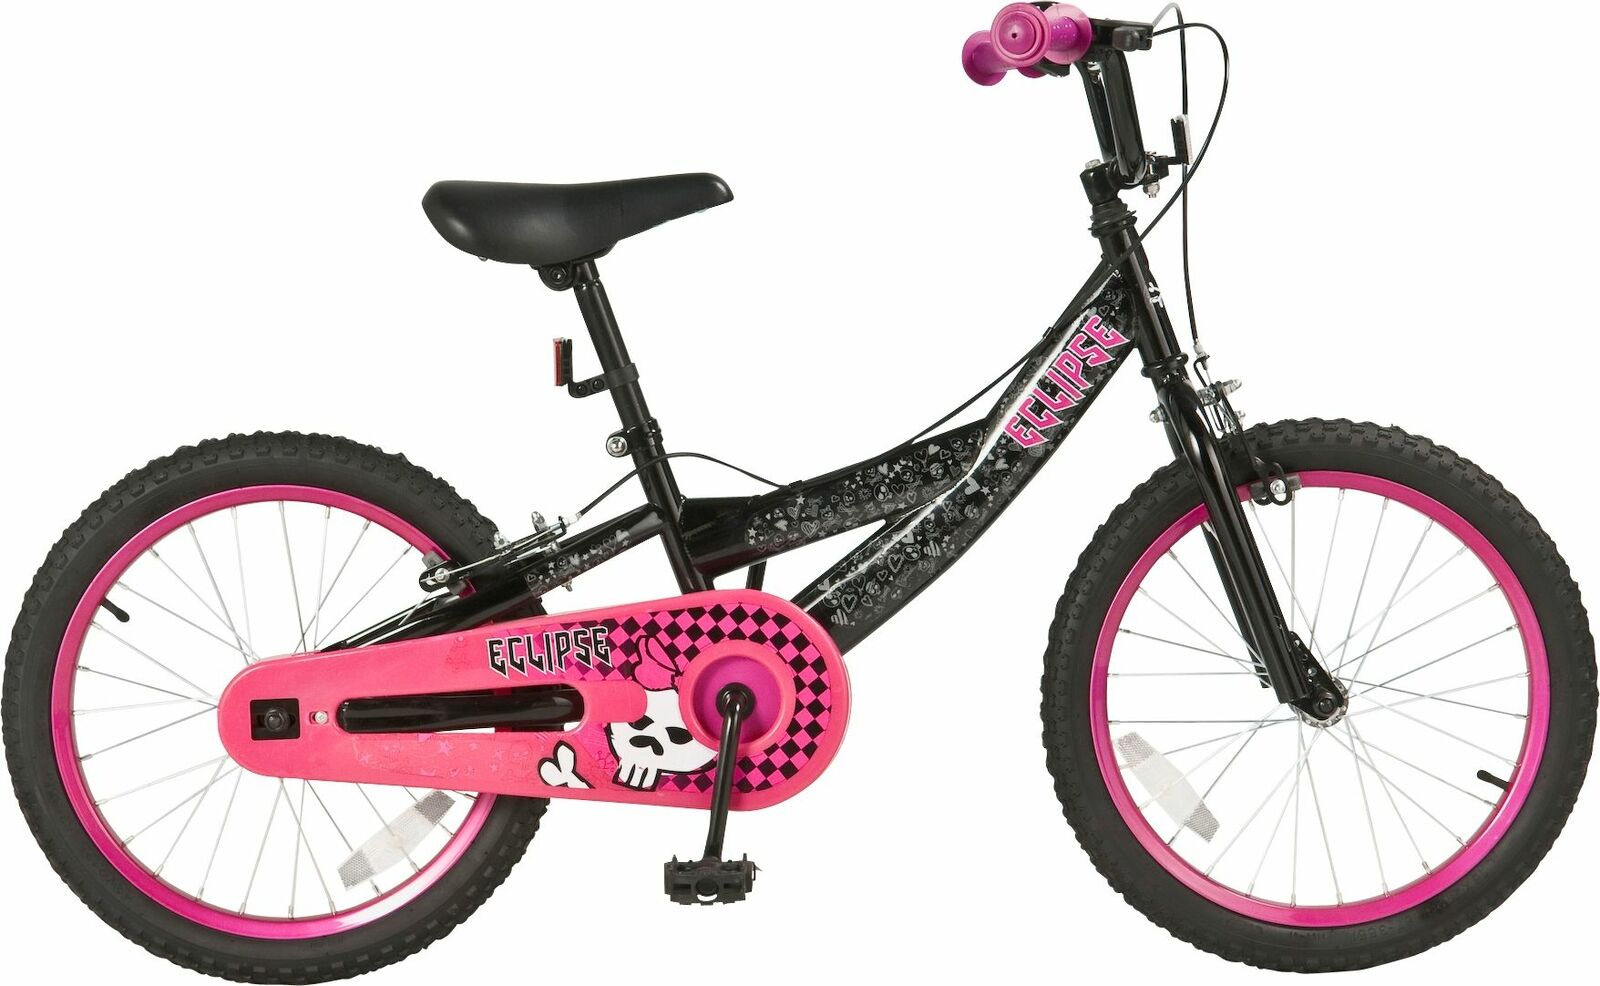 ECLIPSE 18 INCH Steel Frame Bike - BMX Style Tyres - Girls - Pink ...